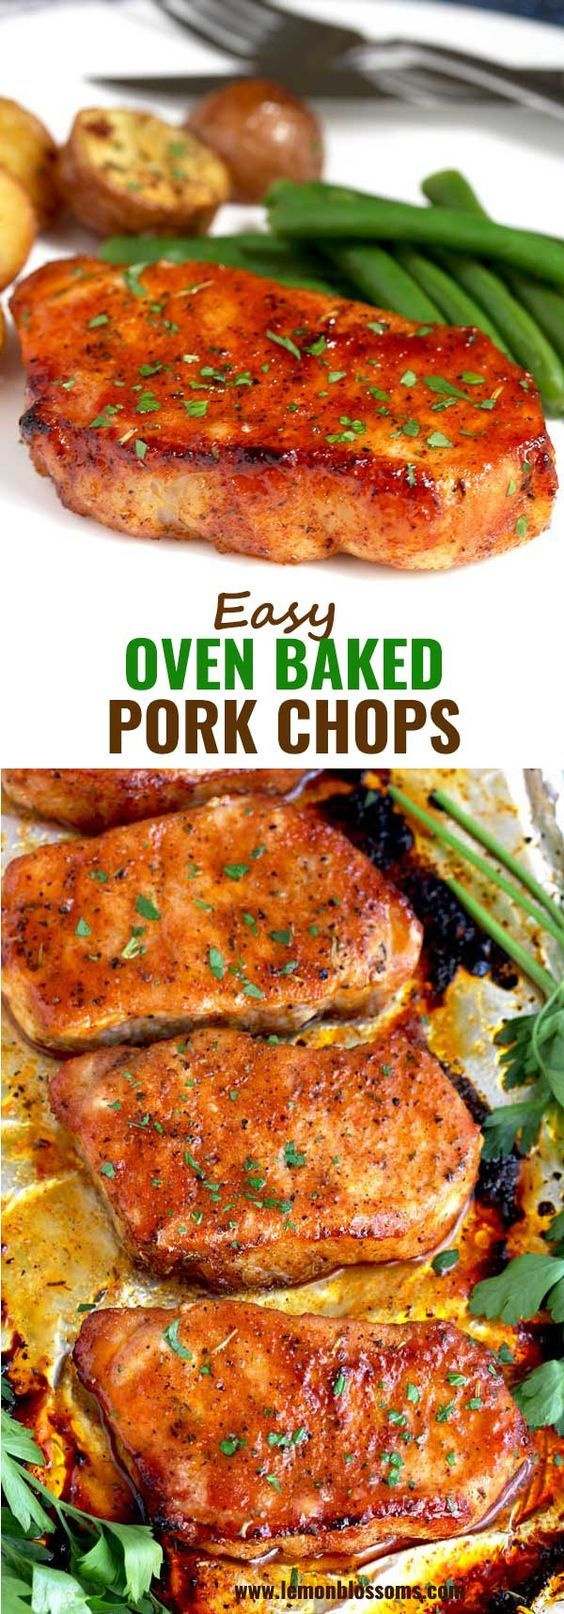 These Oven Baked Pork Chops are seasoned with simple spices and then baked to pe...